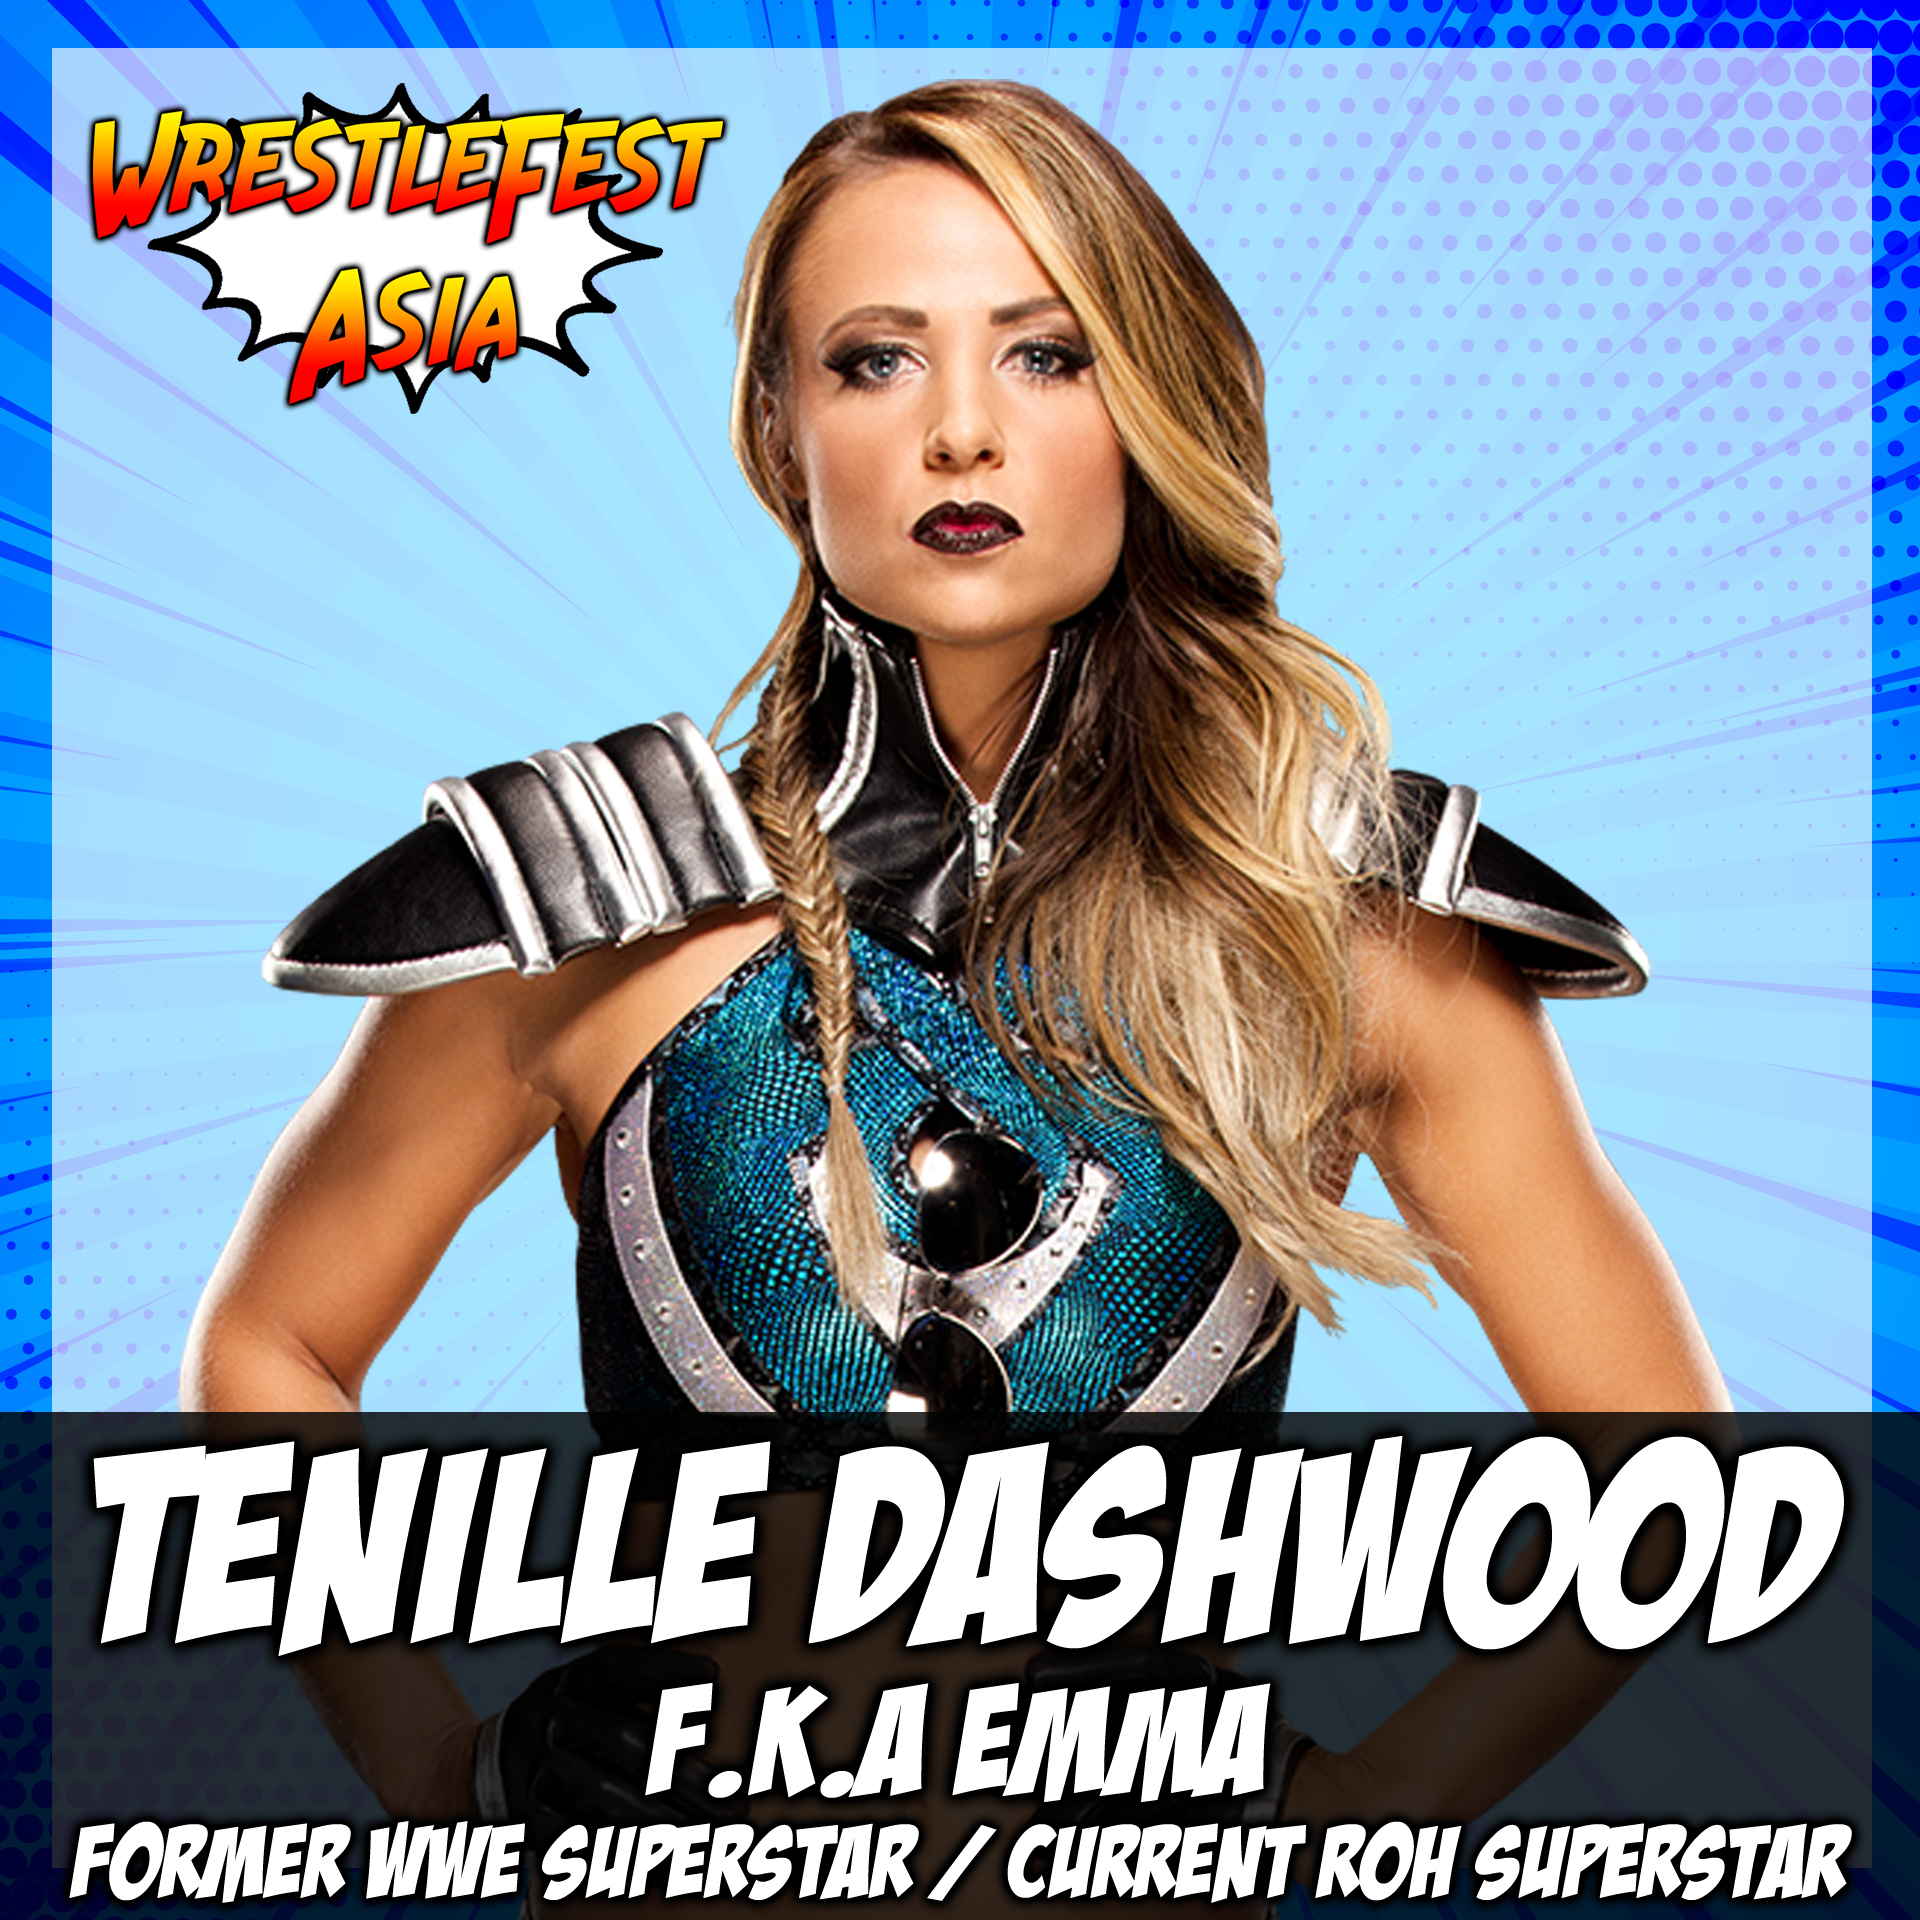 WrestleFest Asia - first-ever Wrestling Fan Meet and Greet featuring former WWE Women Superstars - Alvinology